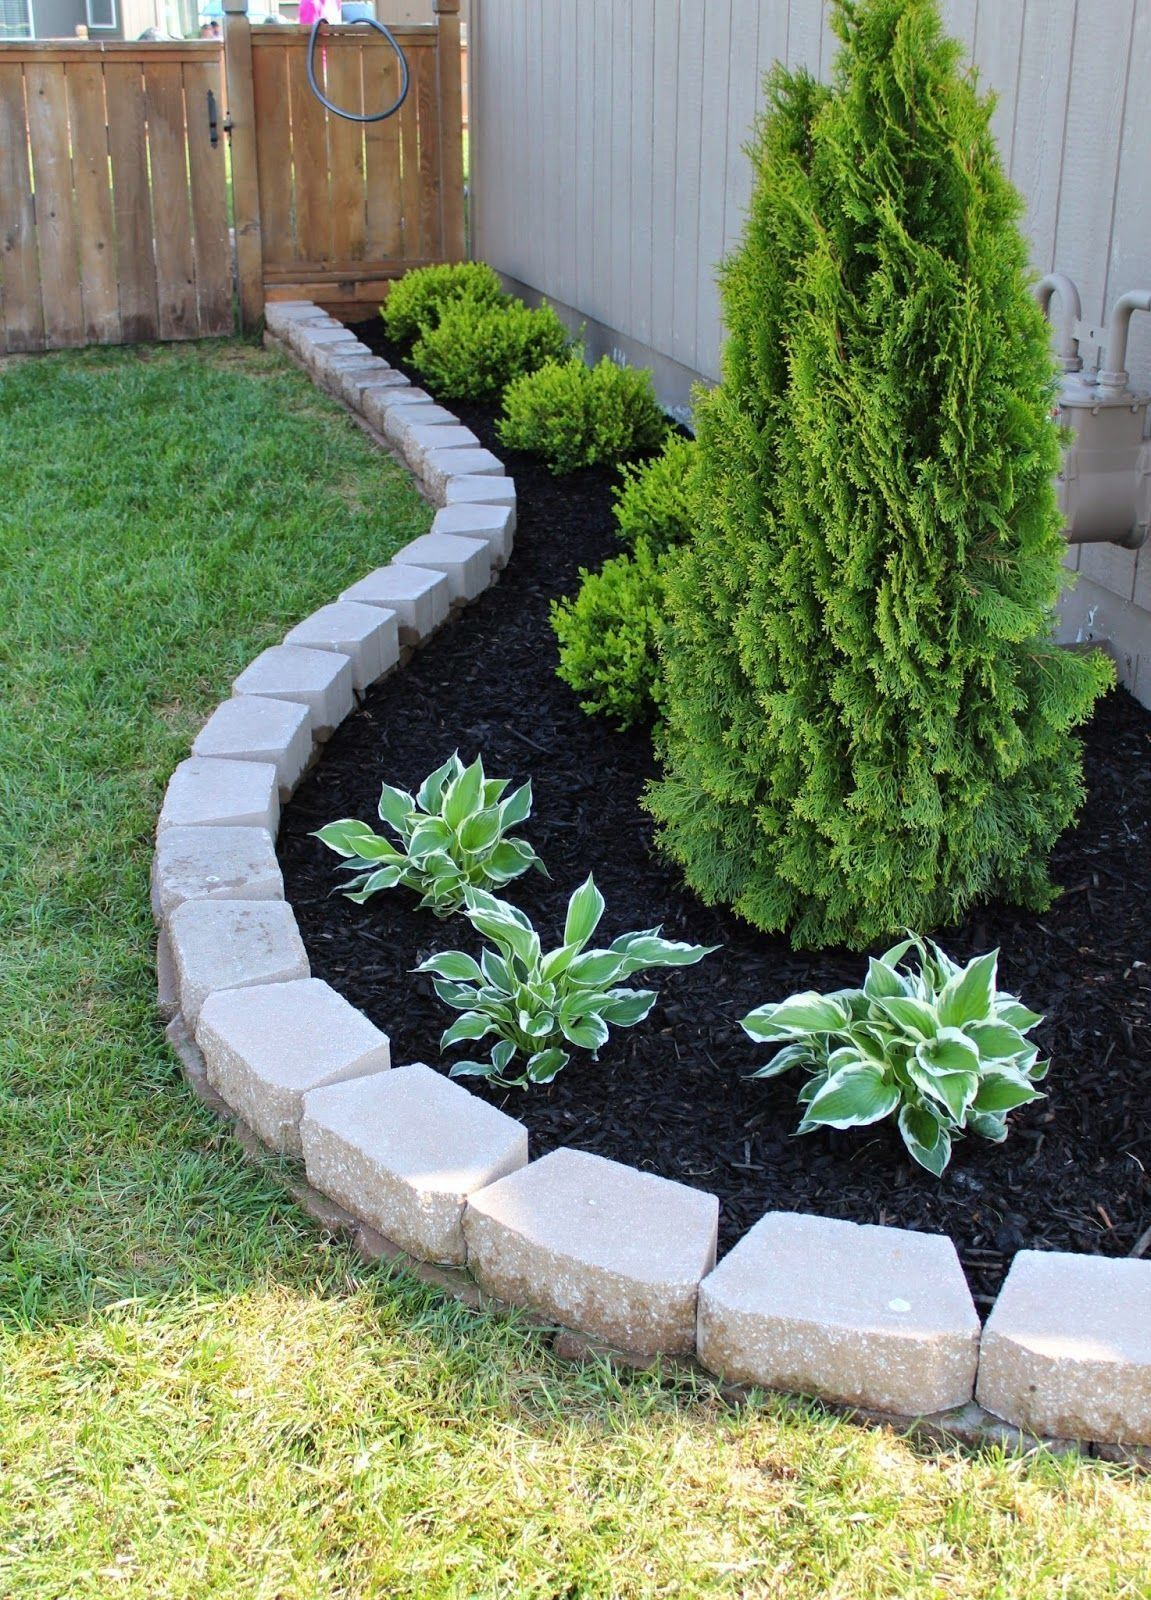 37 easy diy ideas to make your garden more beautiful this spring